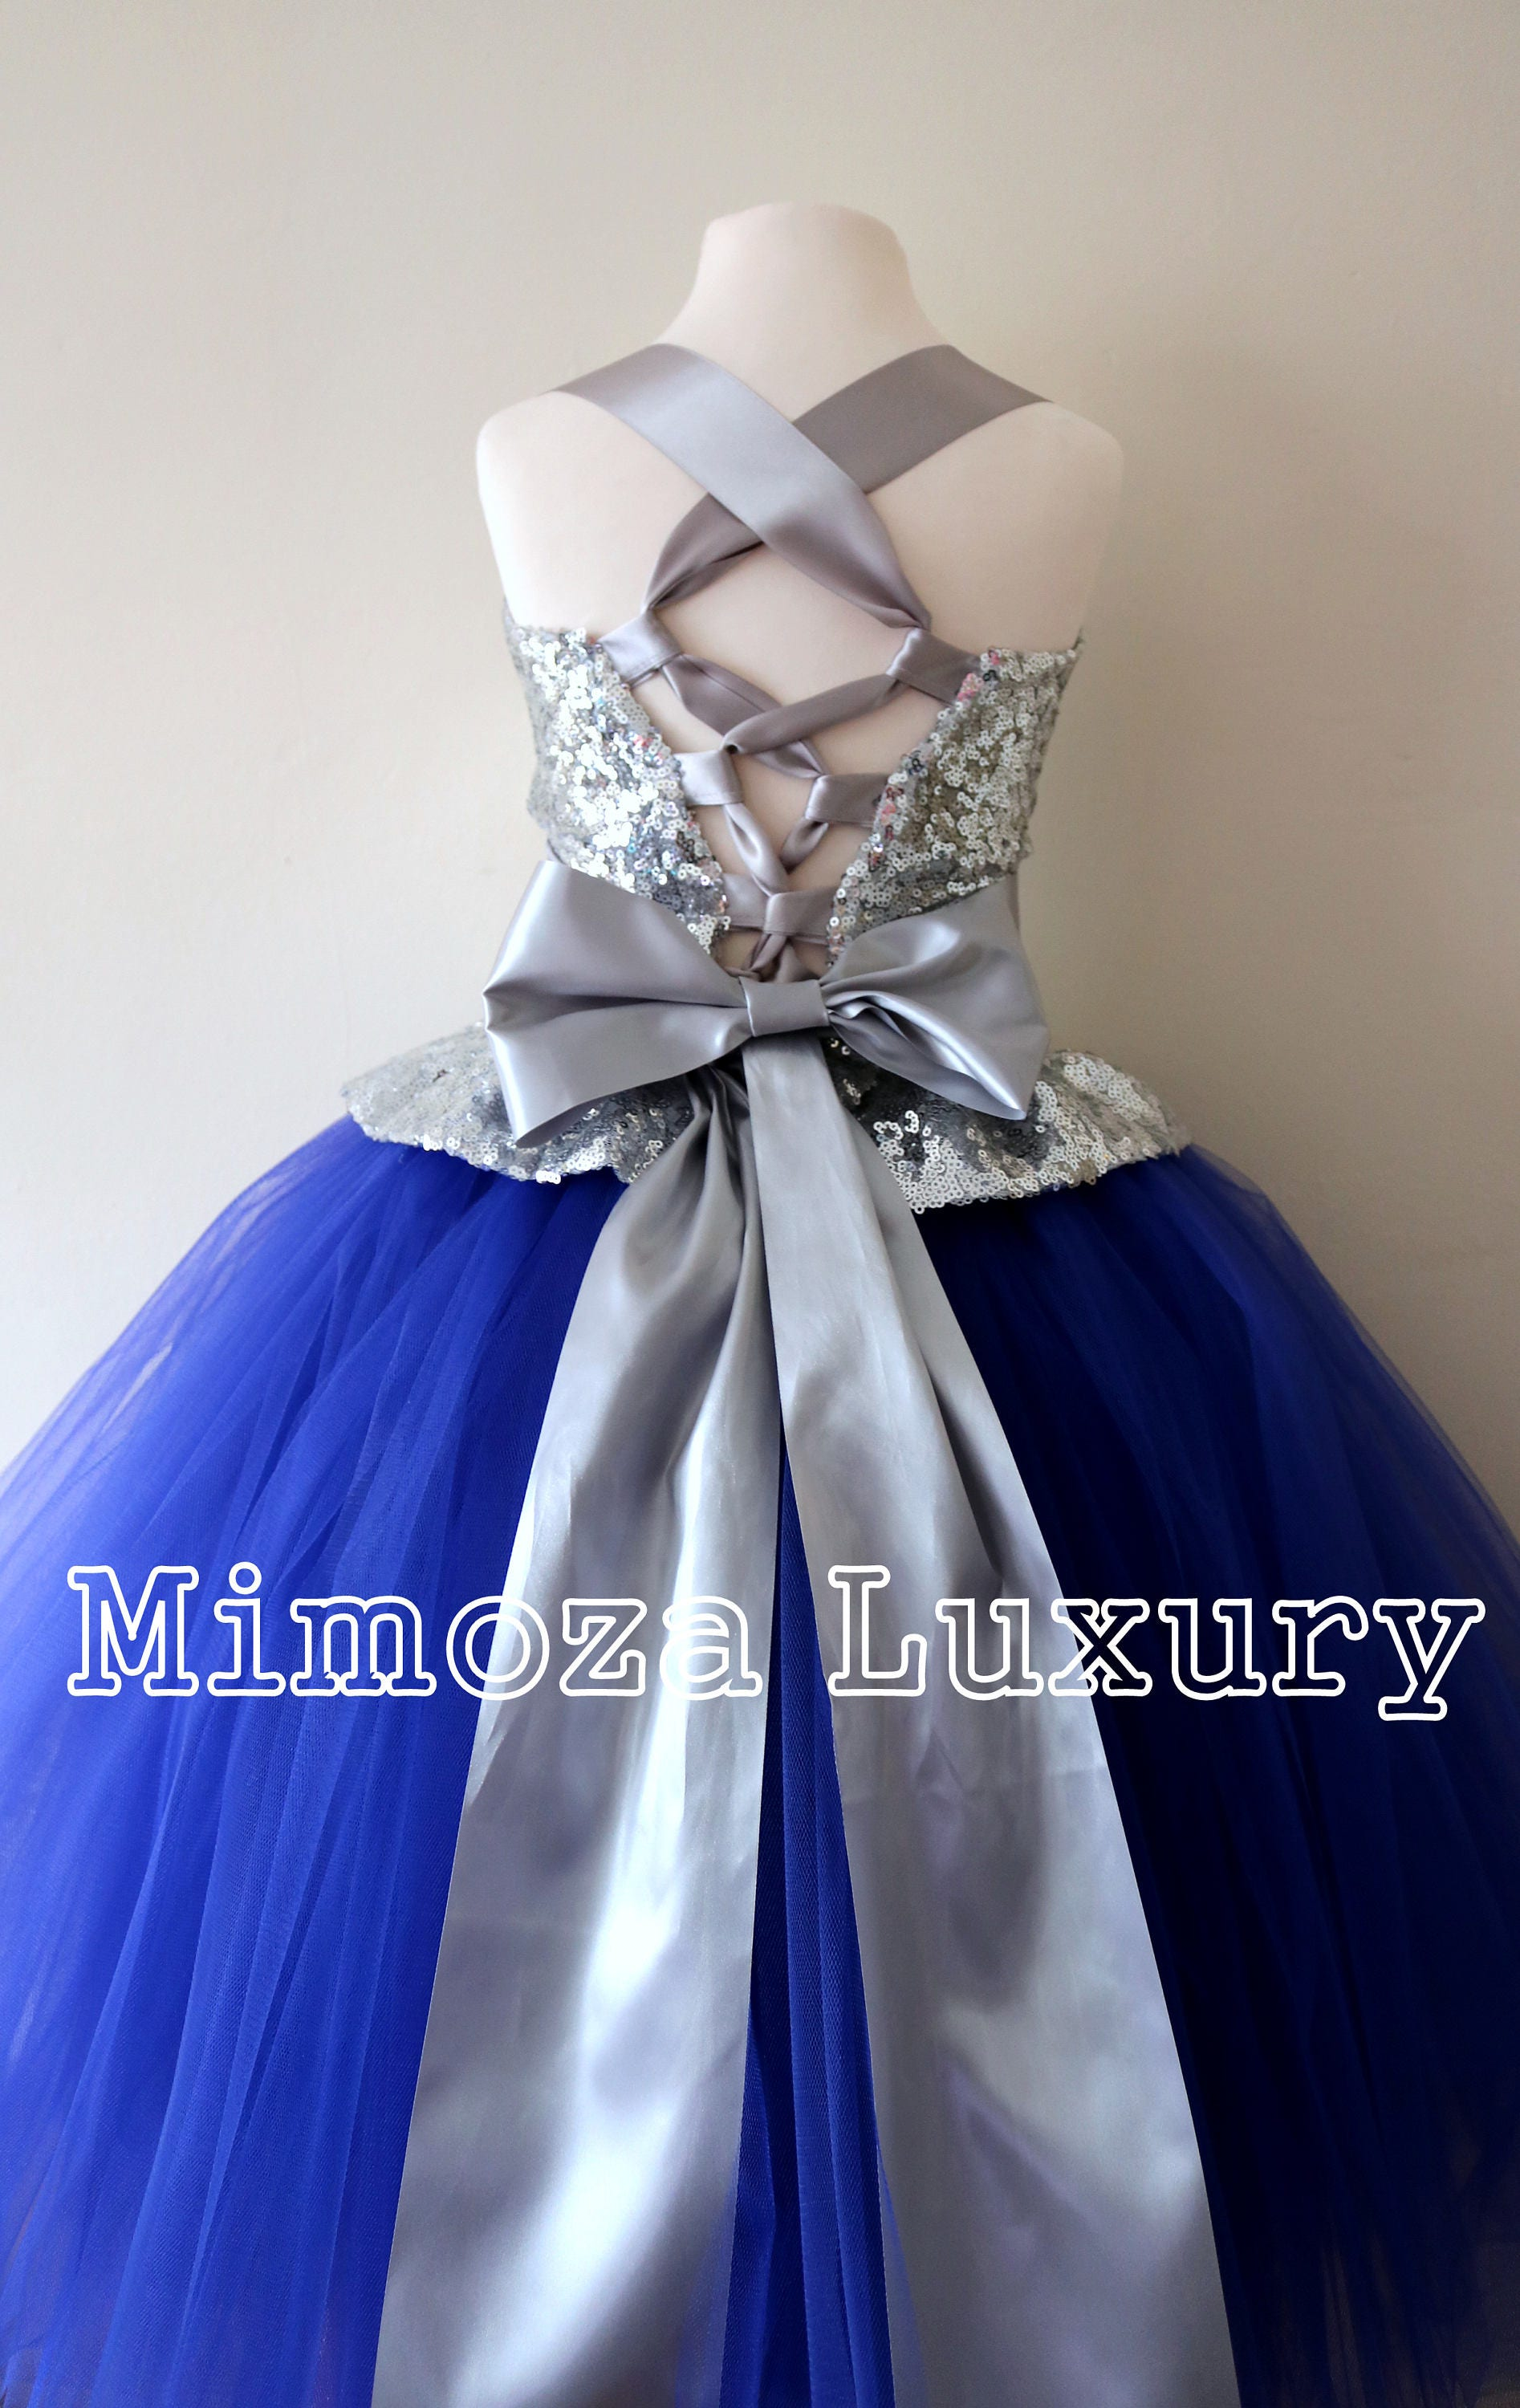 Silver Royal Blue Flower Girl Dress Silver Bridesmaid Dress Couture Flower Girl Gown Bespoke Girls Dress Tulle Princess Dress